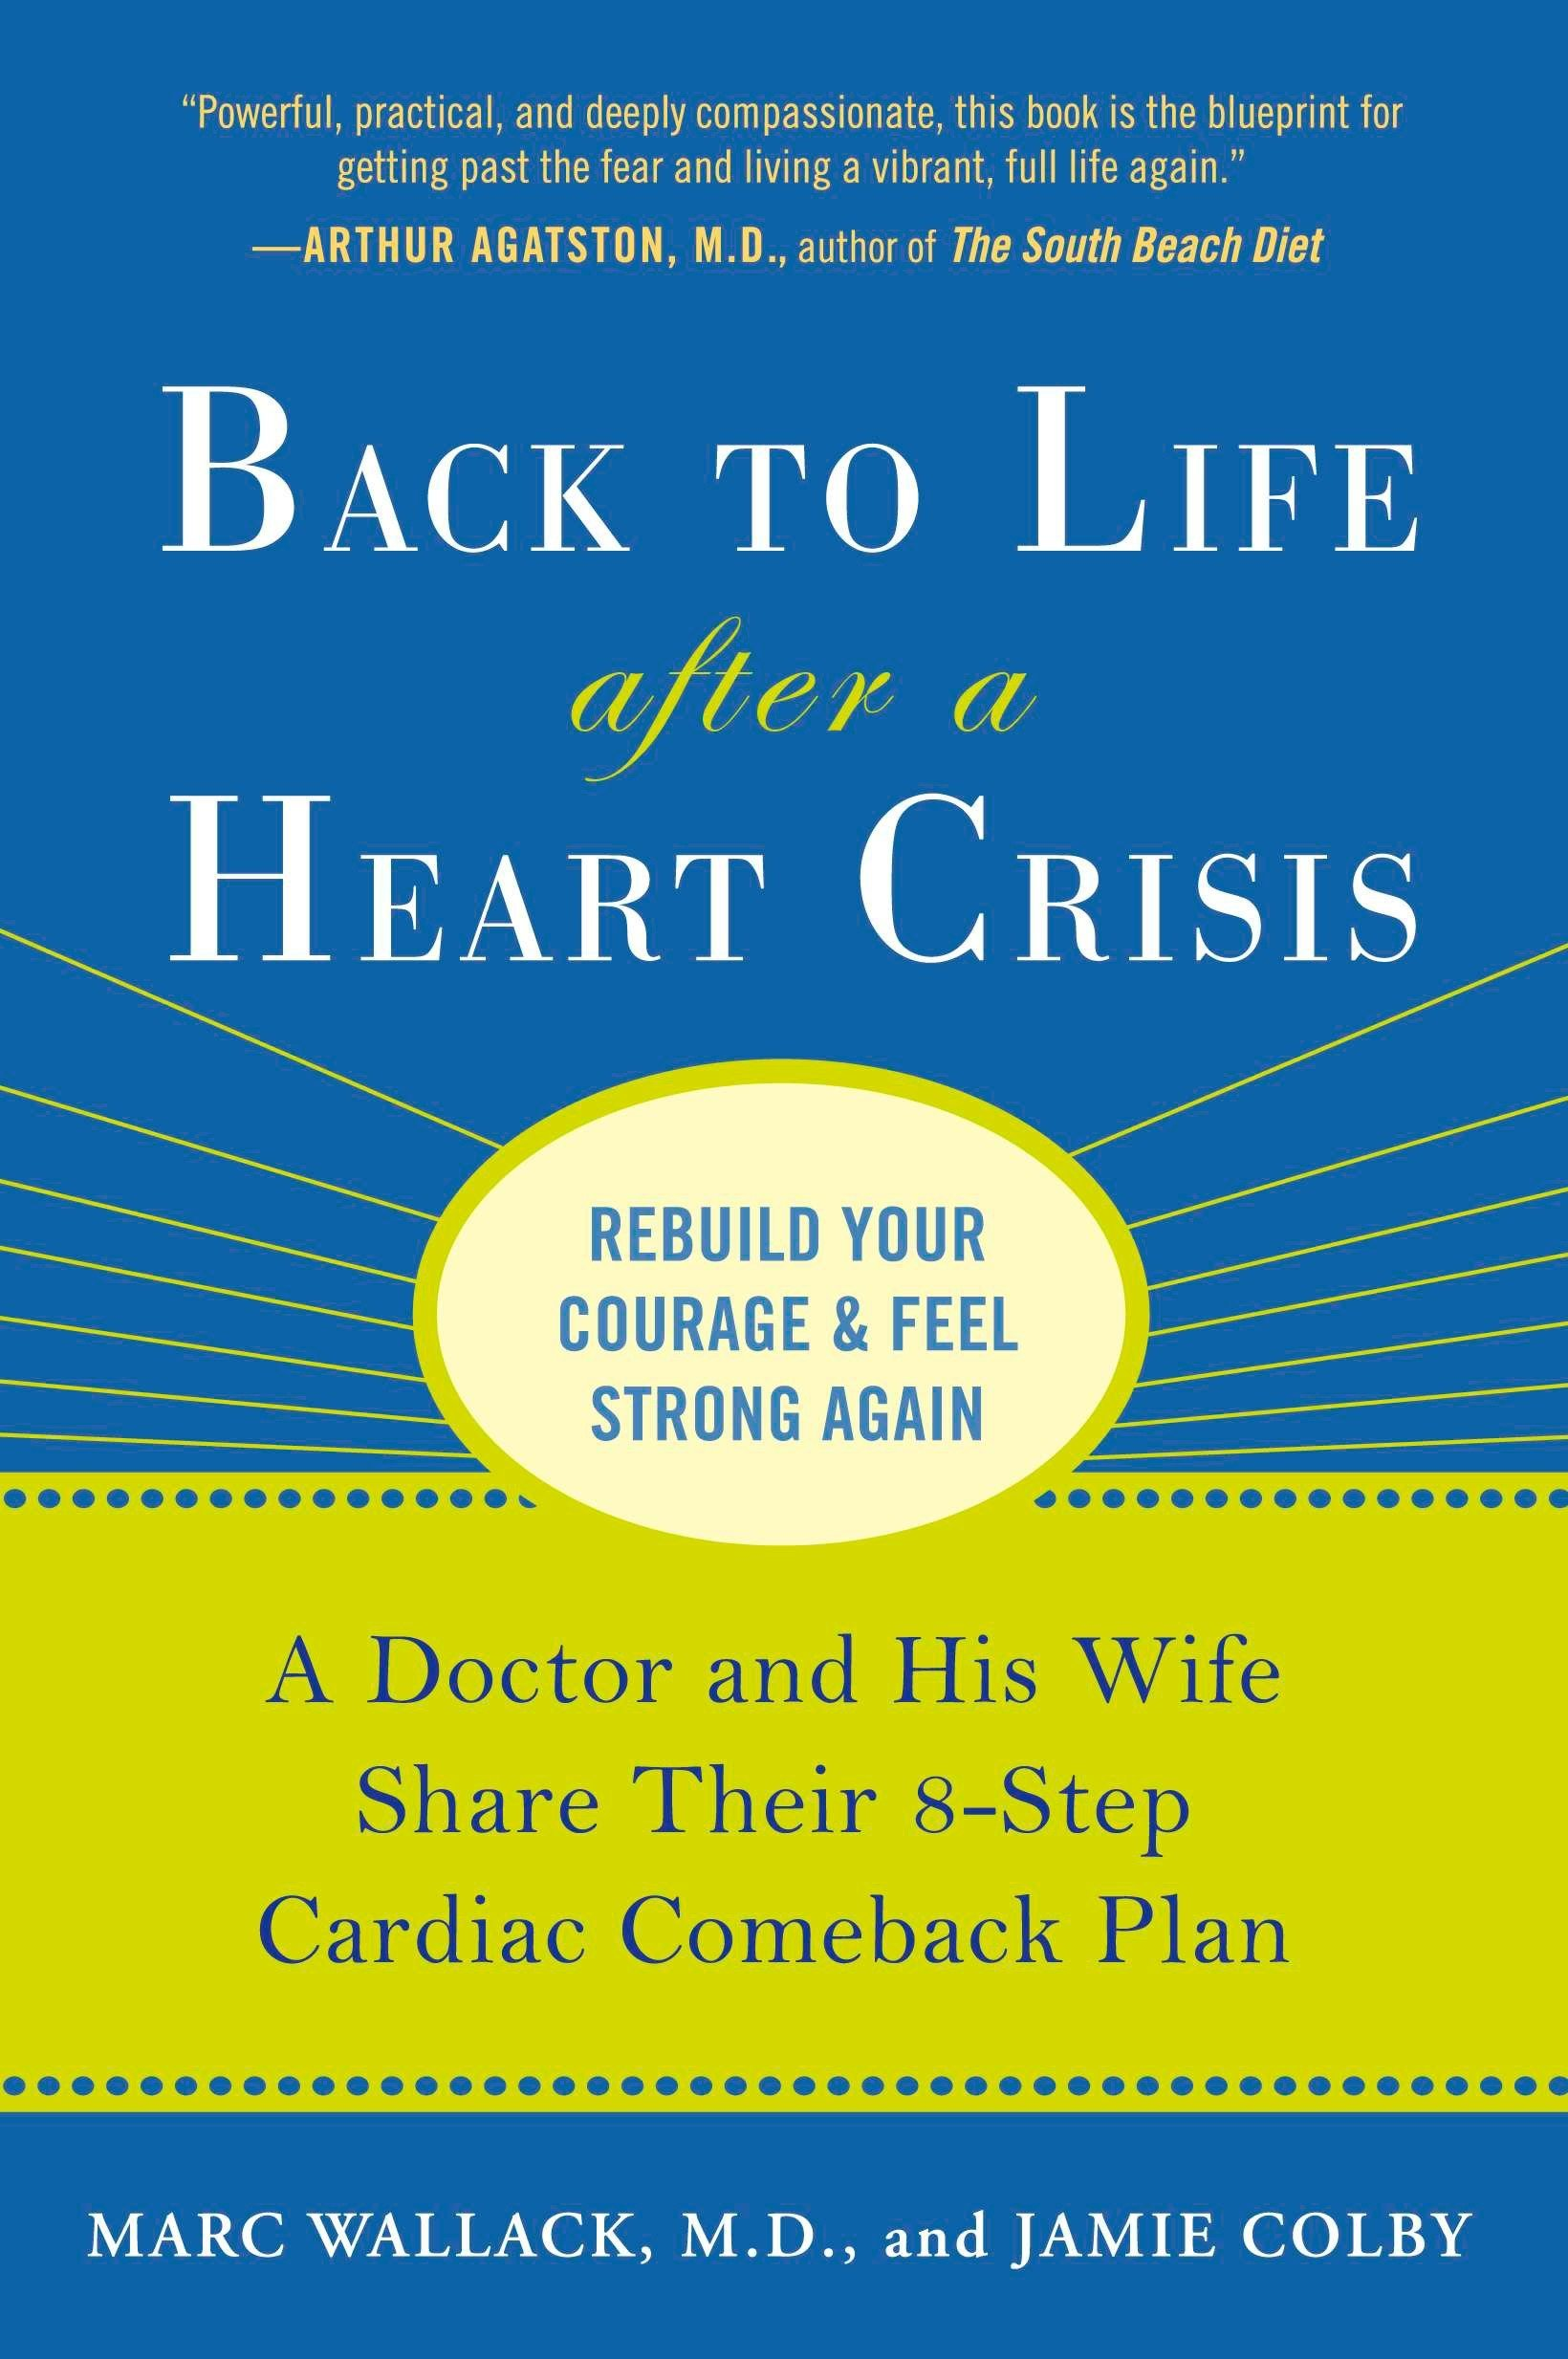 Back to Life After a Heart Crisis: A Doctor and His Wife Share Their 8 Step Cardiac Comeback Plan Paperback – February 1, 2011 Marc Wallack M.D. Jamie Colby Avery 158333419X